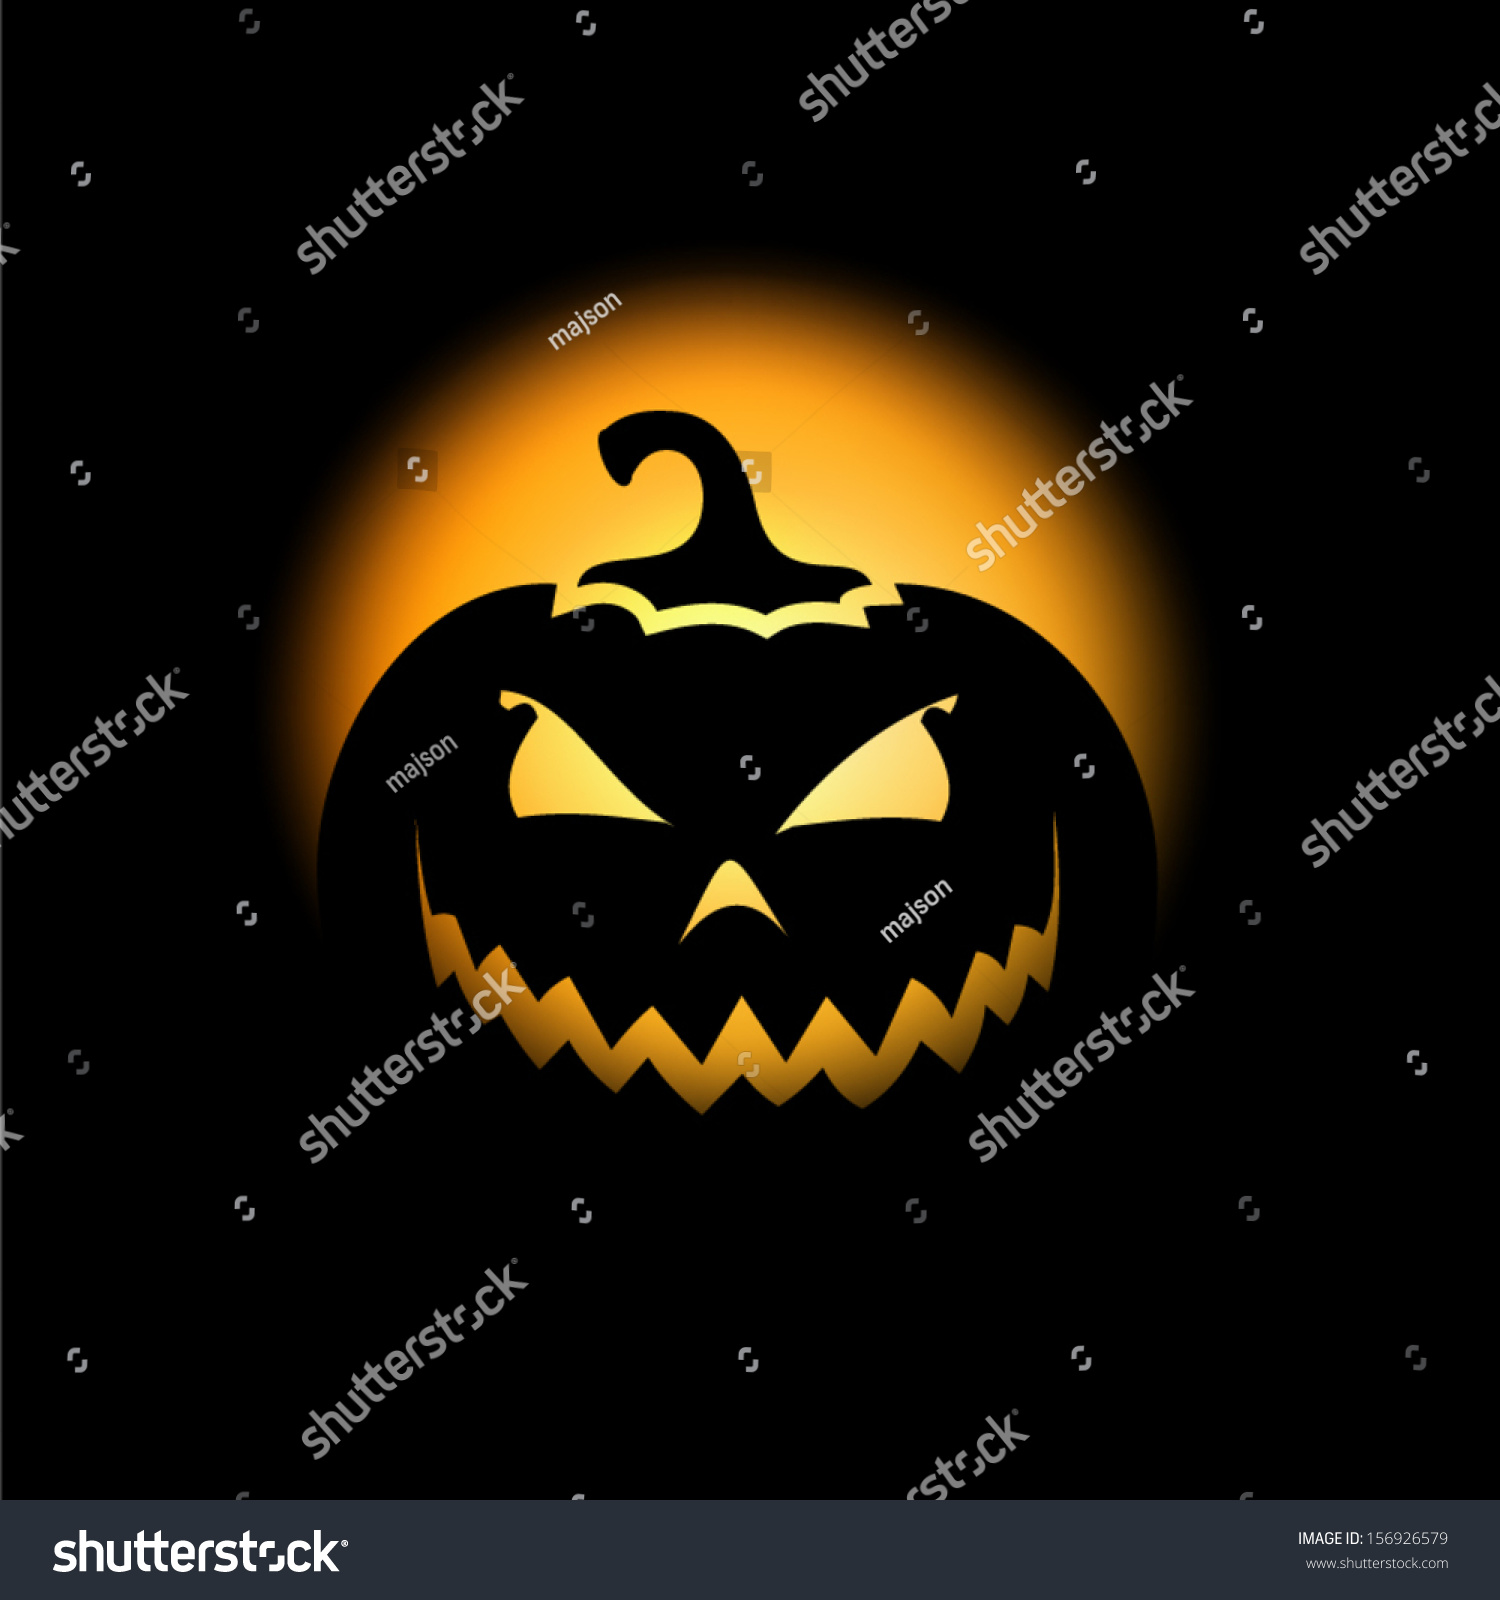 halloween scary pumpkin background stock vector (royalty free